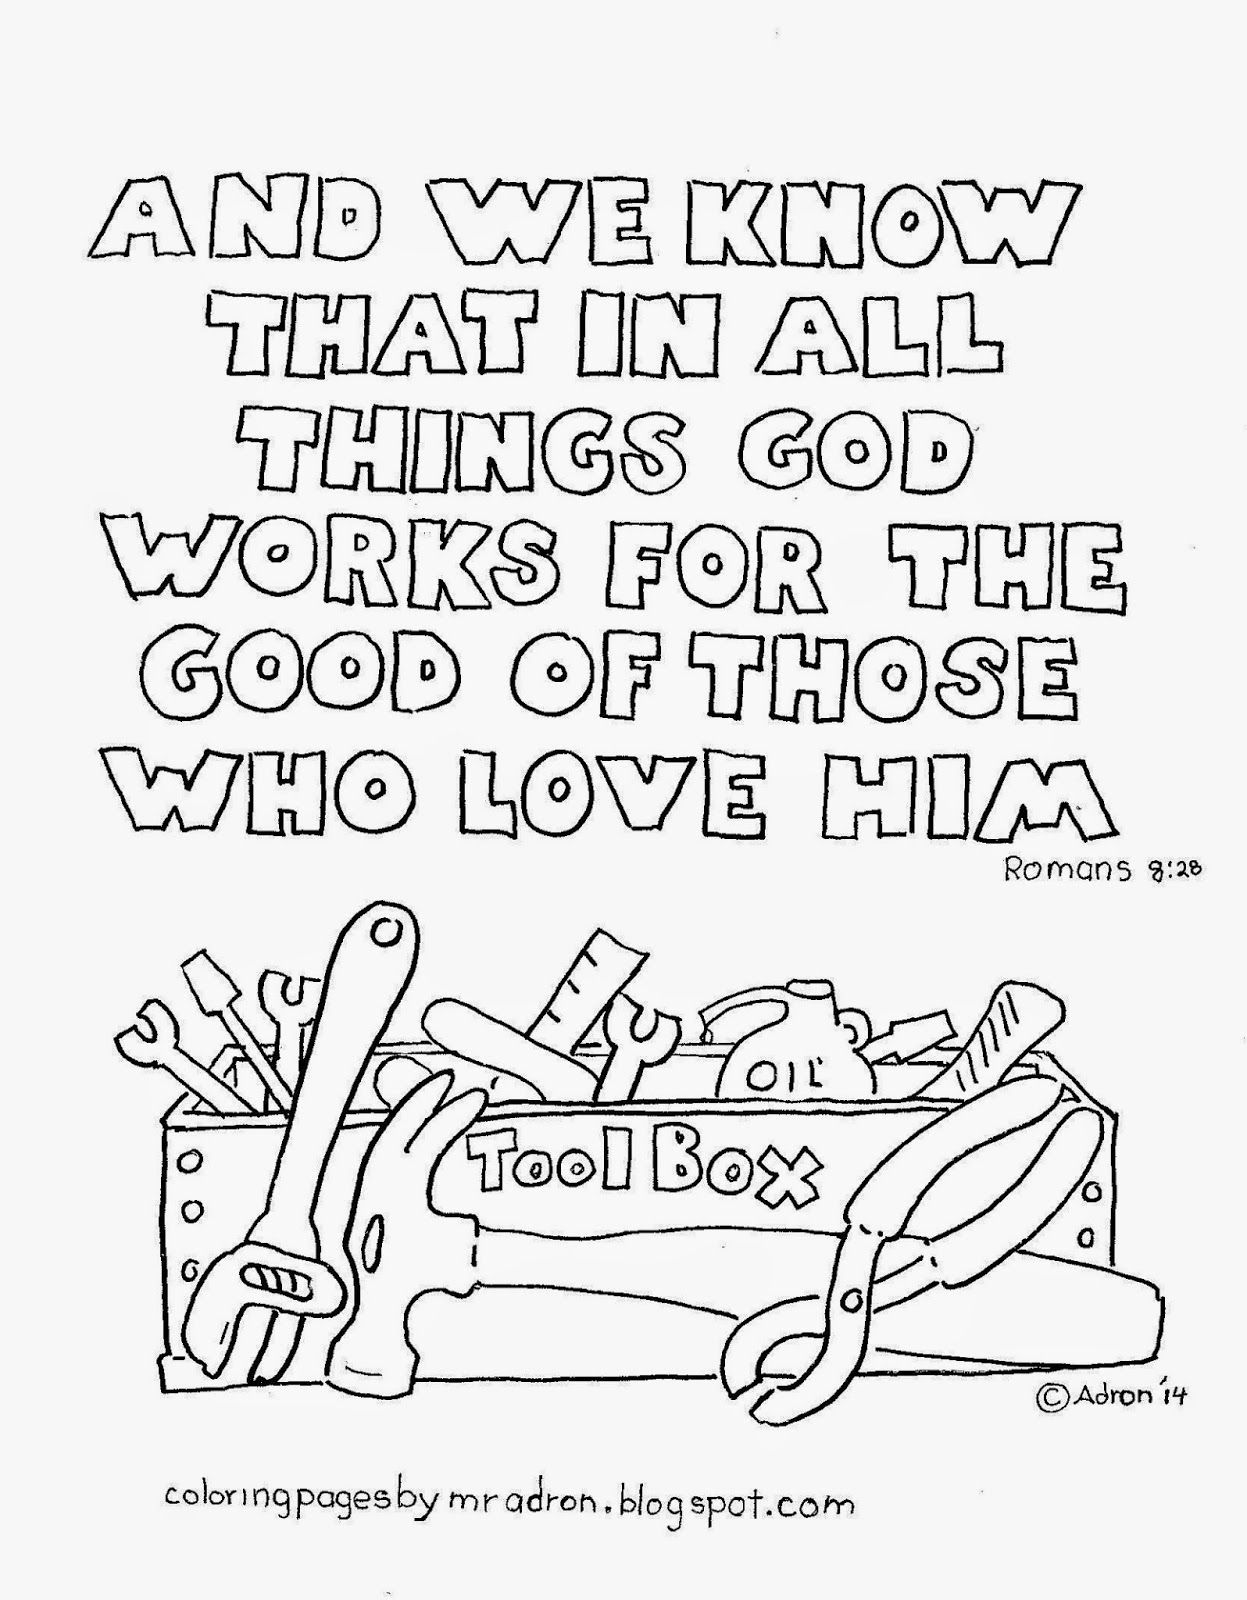 bible verse matthew 7 7 coloring page see more at my blog http